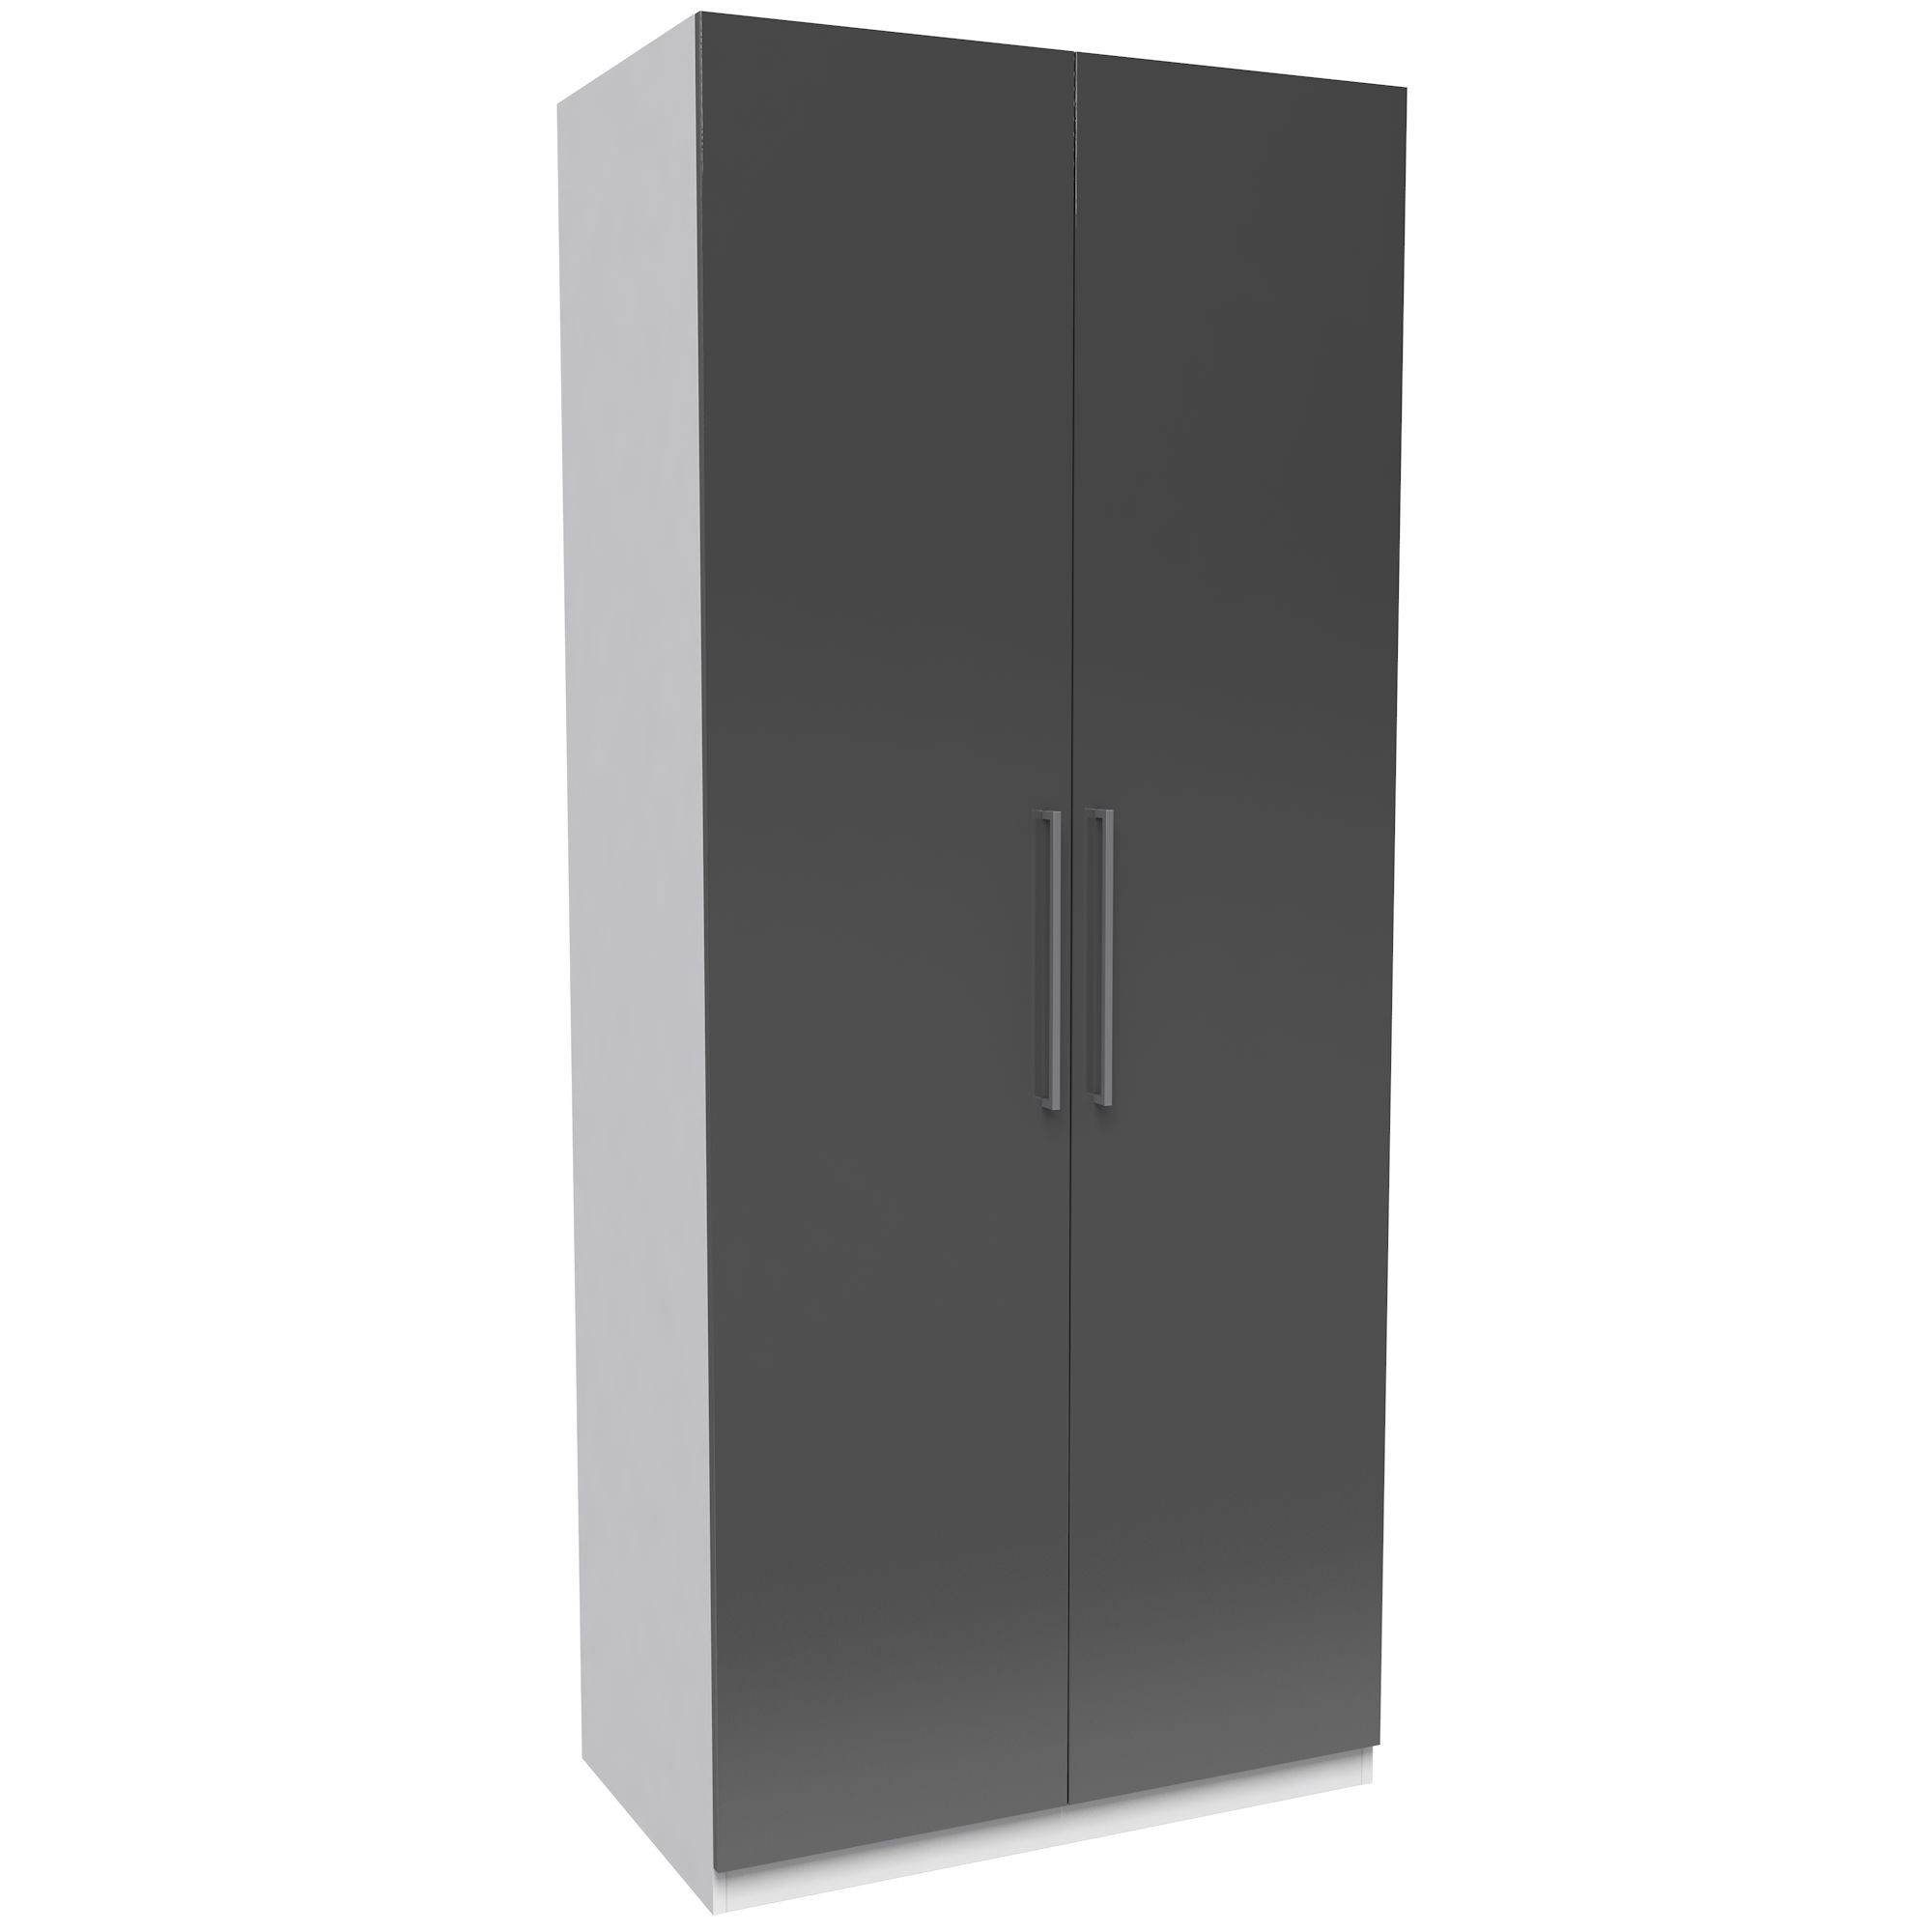 Darwin Handpicked White & Anthracite Tall Double Wardrobe